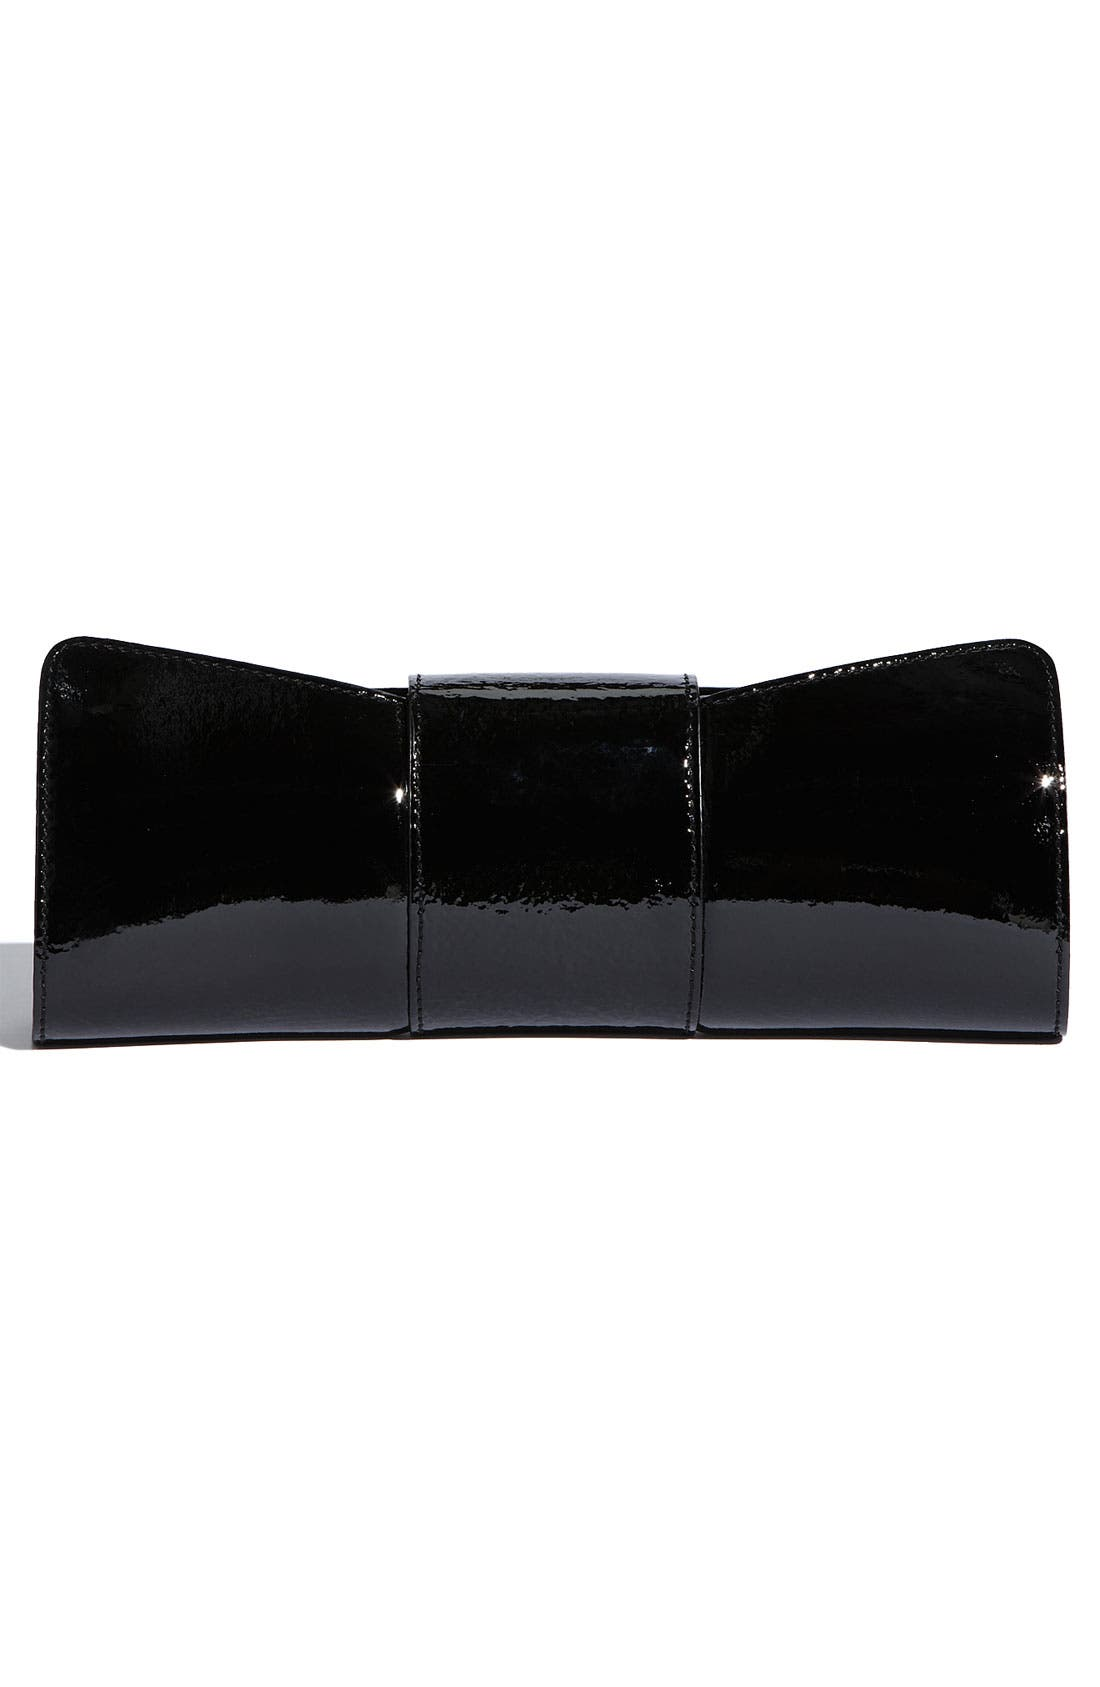 KATE SPADE NEW YORK,                             'sparkle spade bow' clutch,                             Alternate thumbnail 3, color,                             001